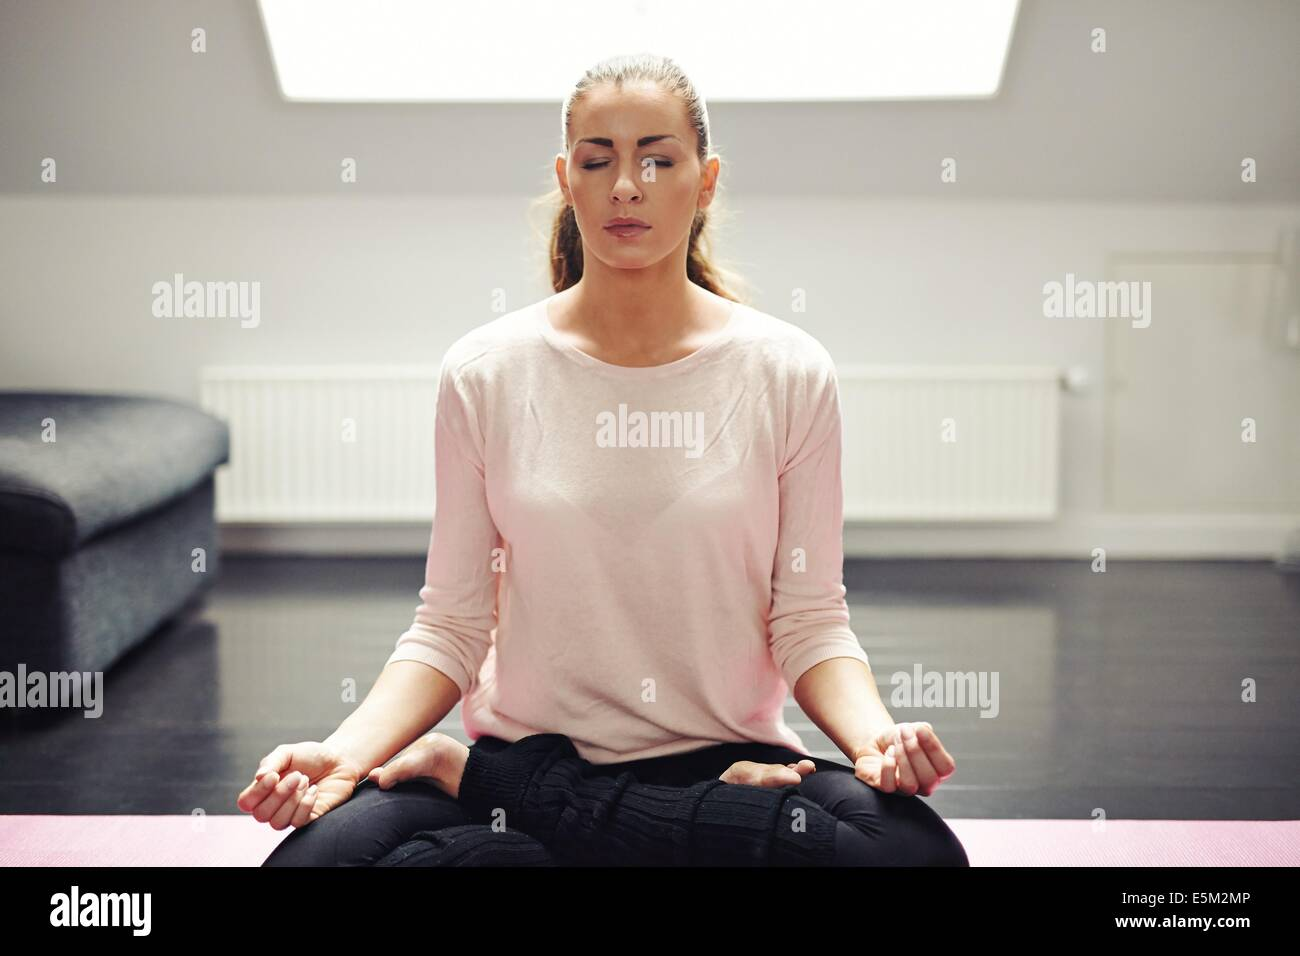 Portrait of beautiful woman exercise. Relaxing at home with yoga workout. Fit caucasian female model in meditation. - Stock Image